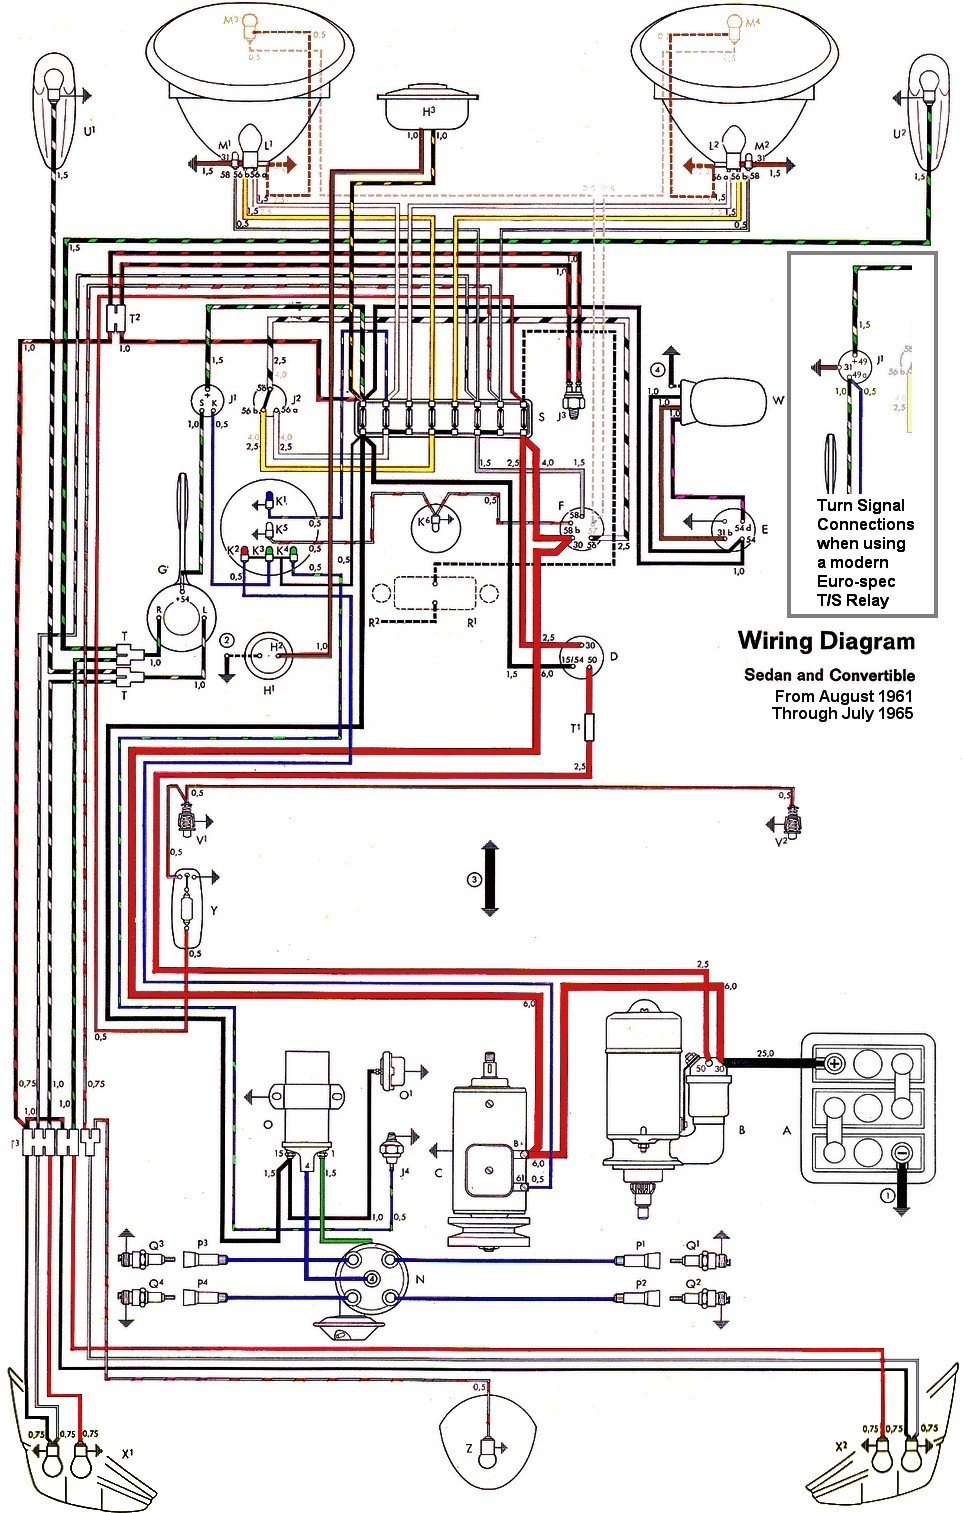 thesamba com type 1 wiring diagrams rh thesamba com Vintage VW Wiring Diagrams VW Beetle Generator Wiring Diagram